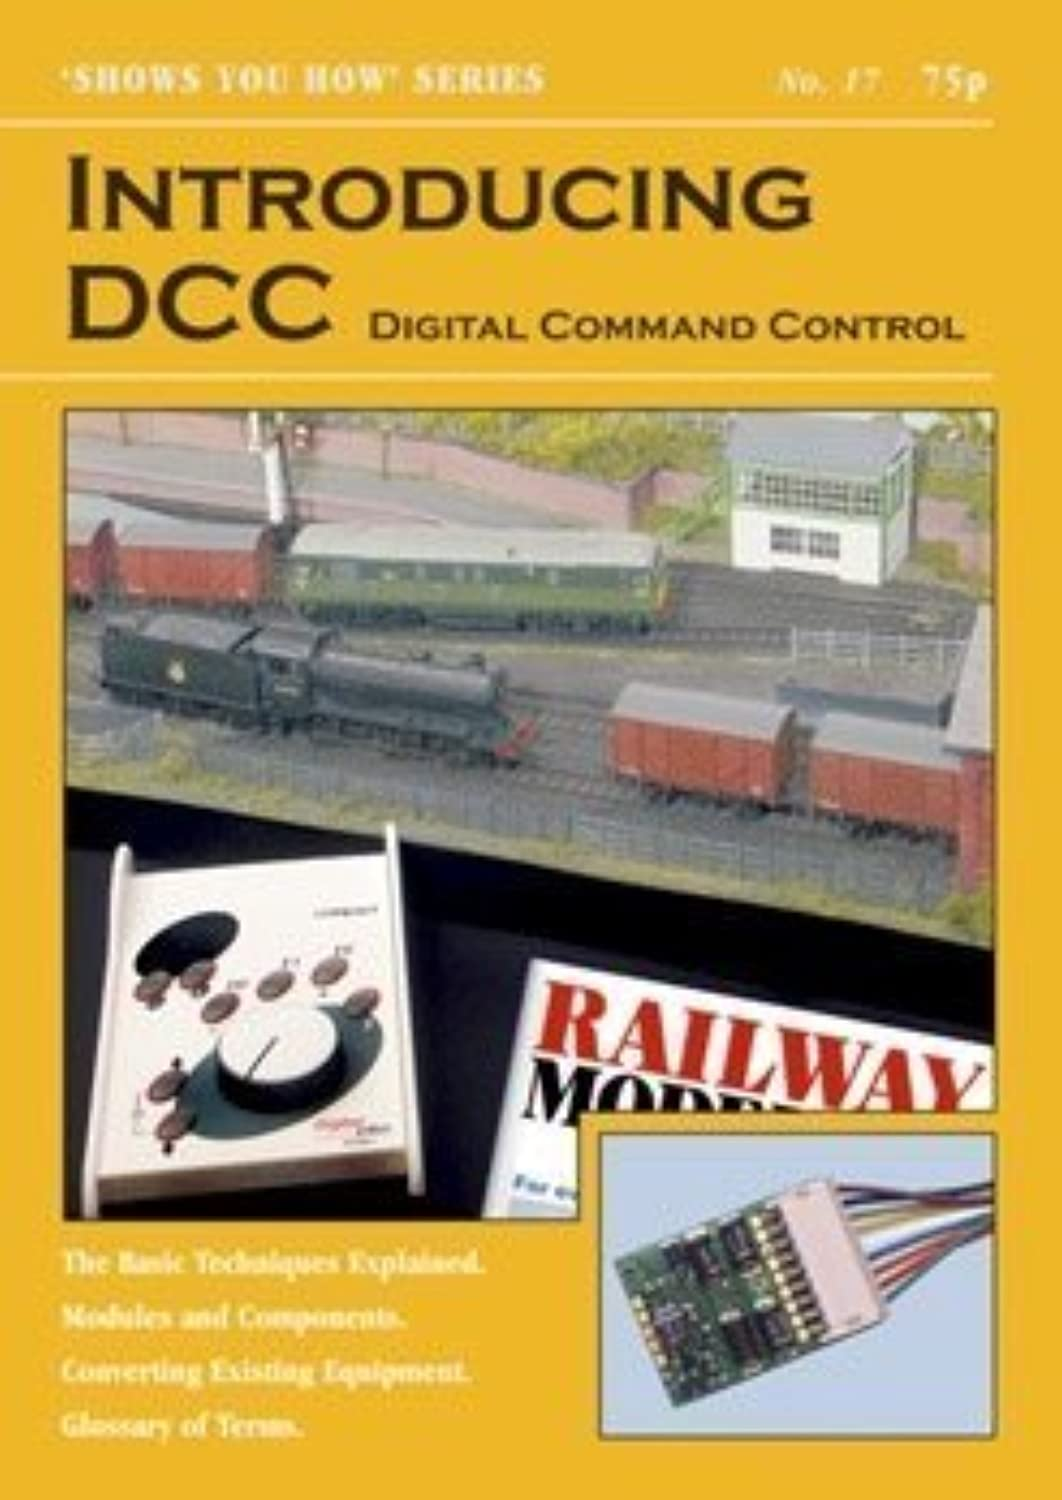 Peco SYH17 Introducing DCC by PECO